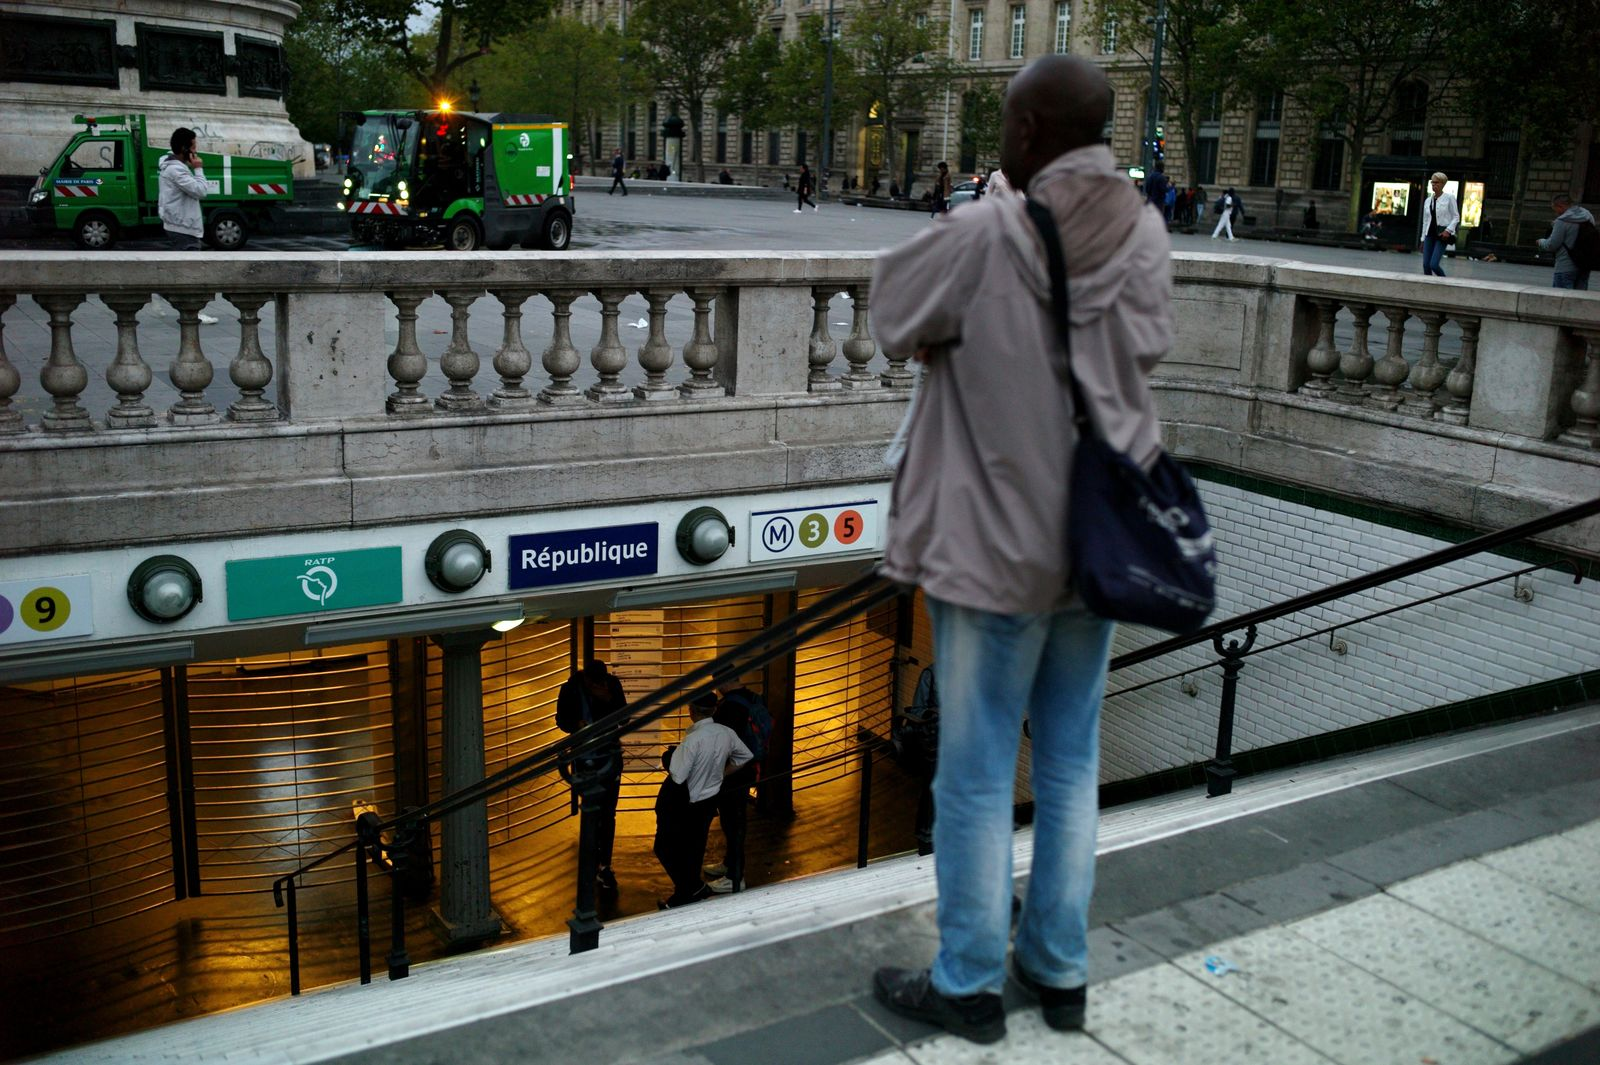 A man stands in front of the closed gate of the Republique square metro station, in Paris, Friday, Sept. 13, 2019. Paris metro warns over major strike, transport chaos Friday. (AP Photo/Thibault Camus)